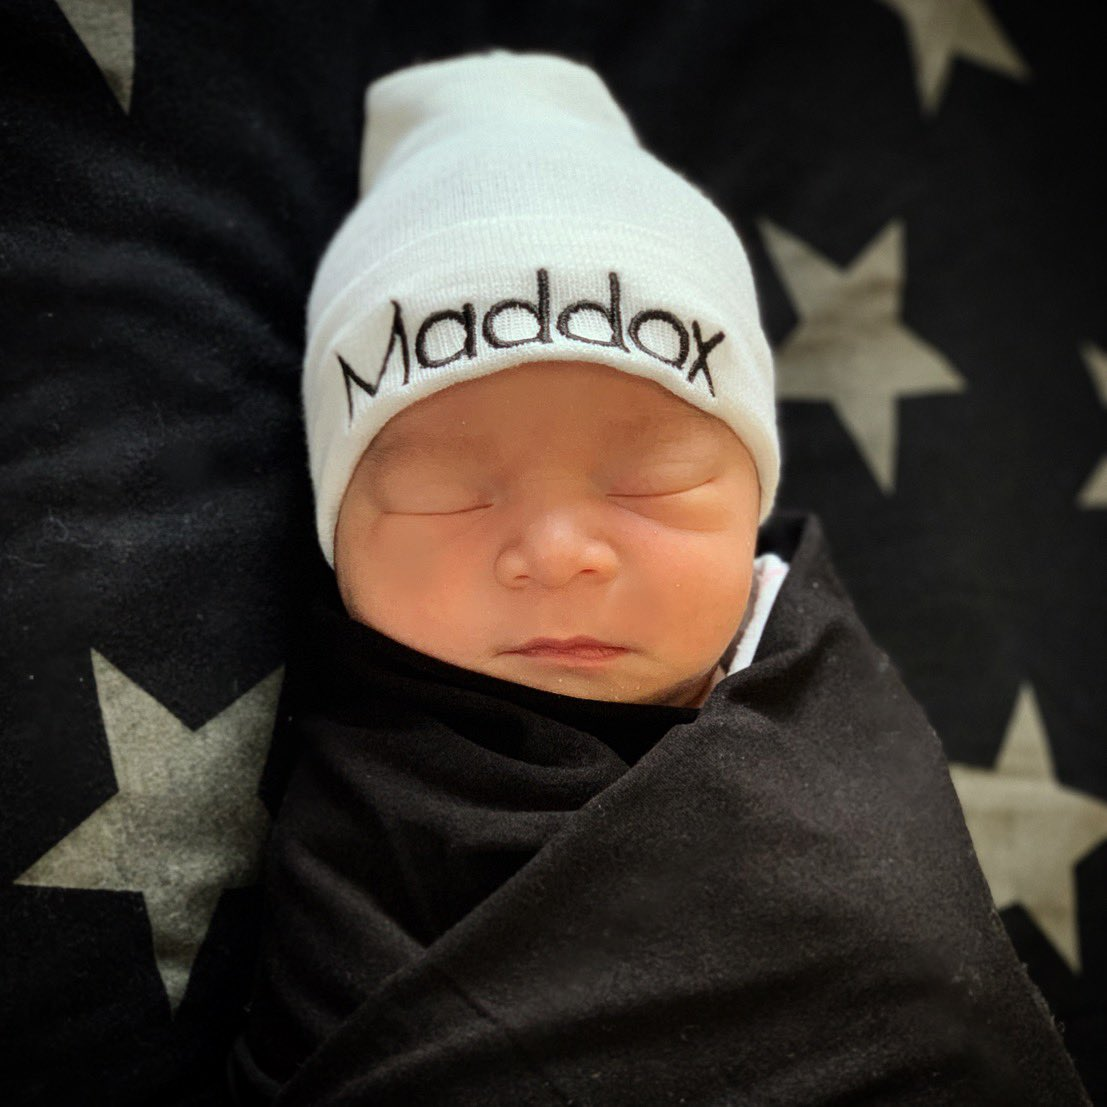 Maddox Jayden Jones... born at 2:26am this morning weighing 7lbs 8oz and 20.5in long. Wifey and baby are both healthy as can be and loving every second. 🙏🏾🙌🏾